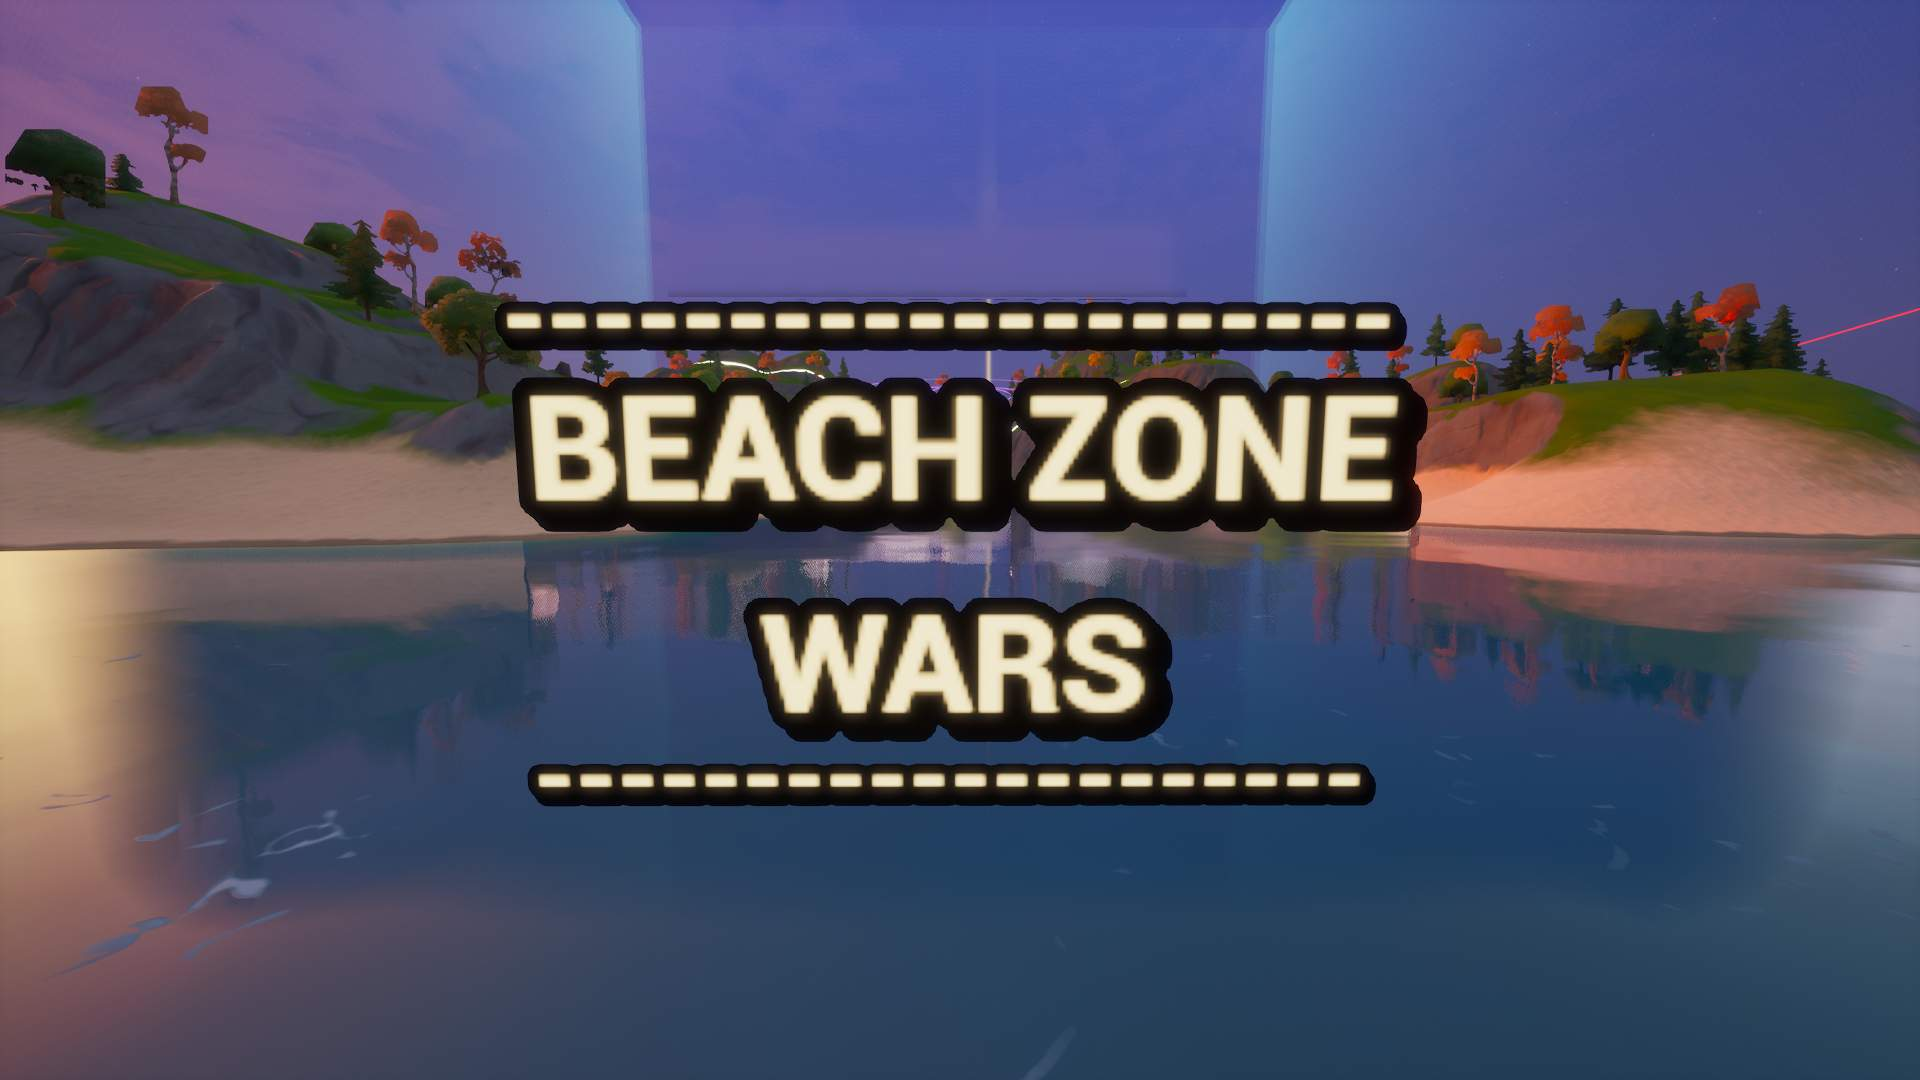 BEACH ZONE WARS